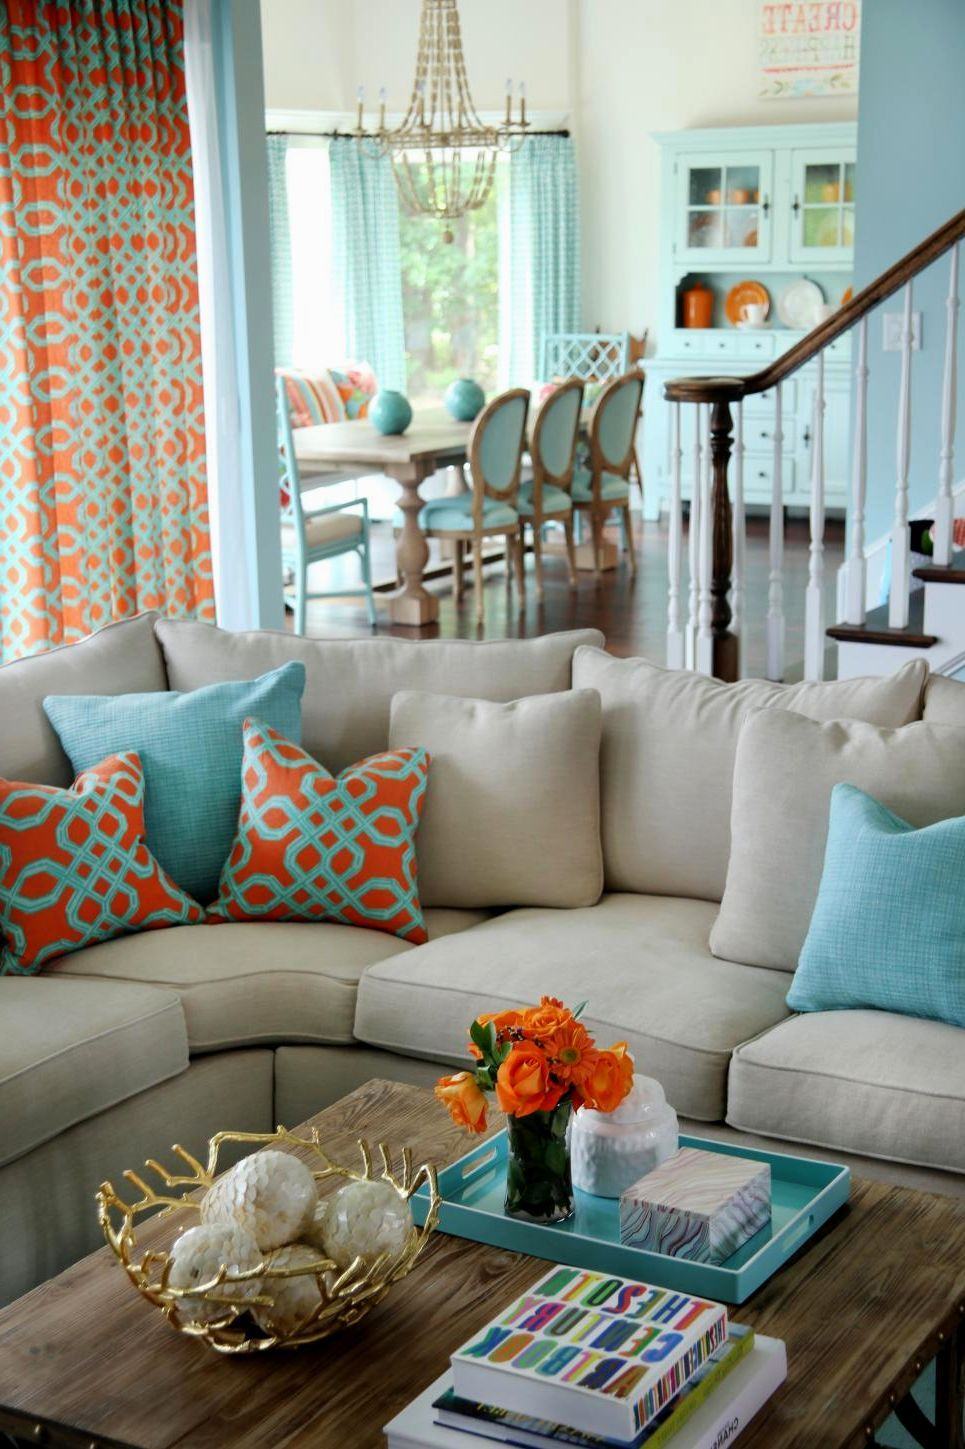 Orange And Aqua: Orange-and-aqua-living-room-orange-and-teal-living-room